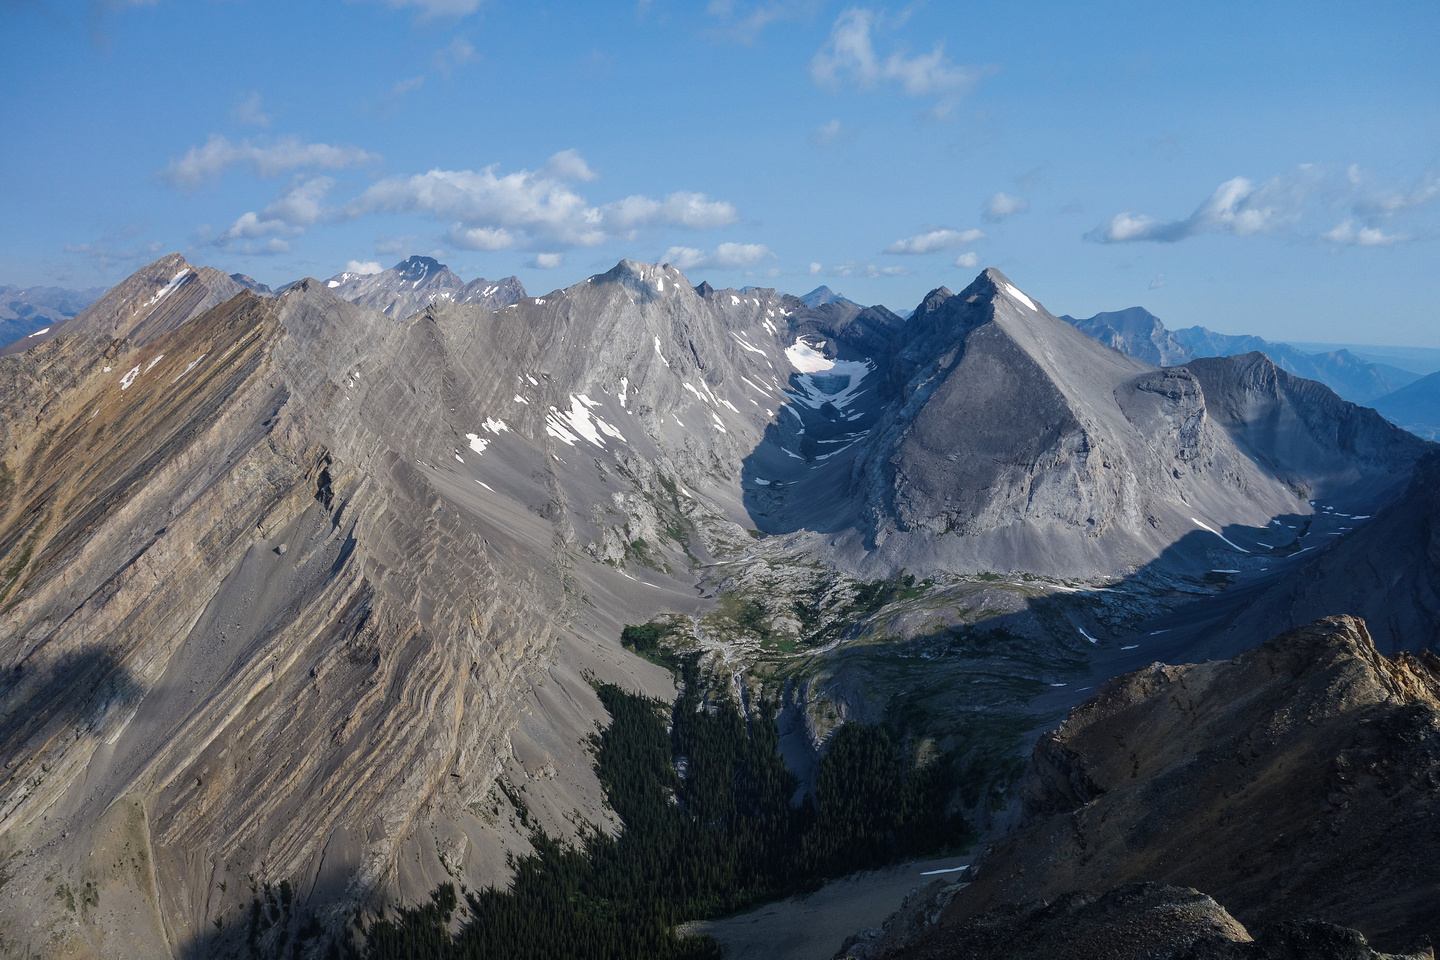 View into the James Walker bowl with both scramble routes to the summit visible.